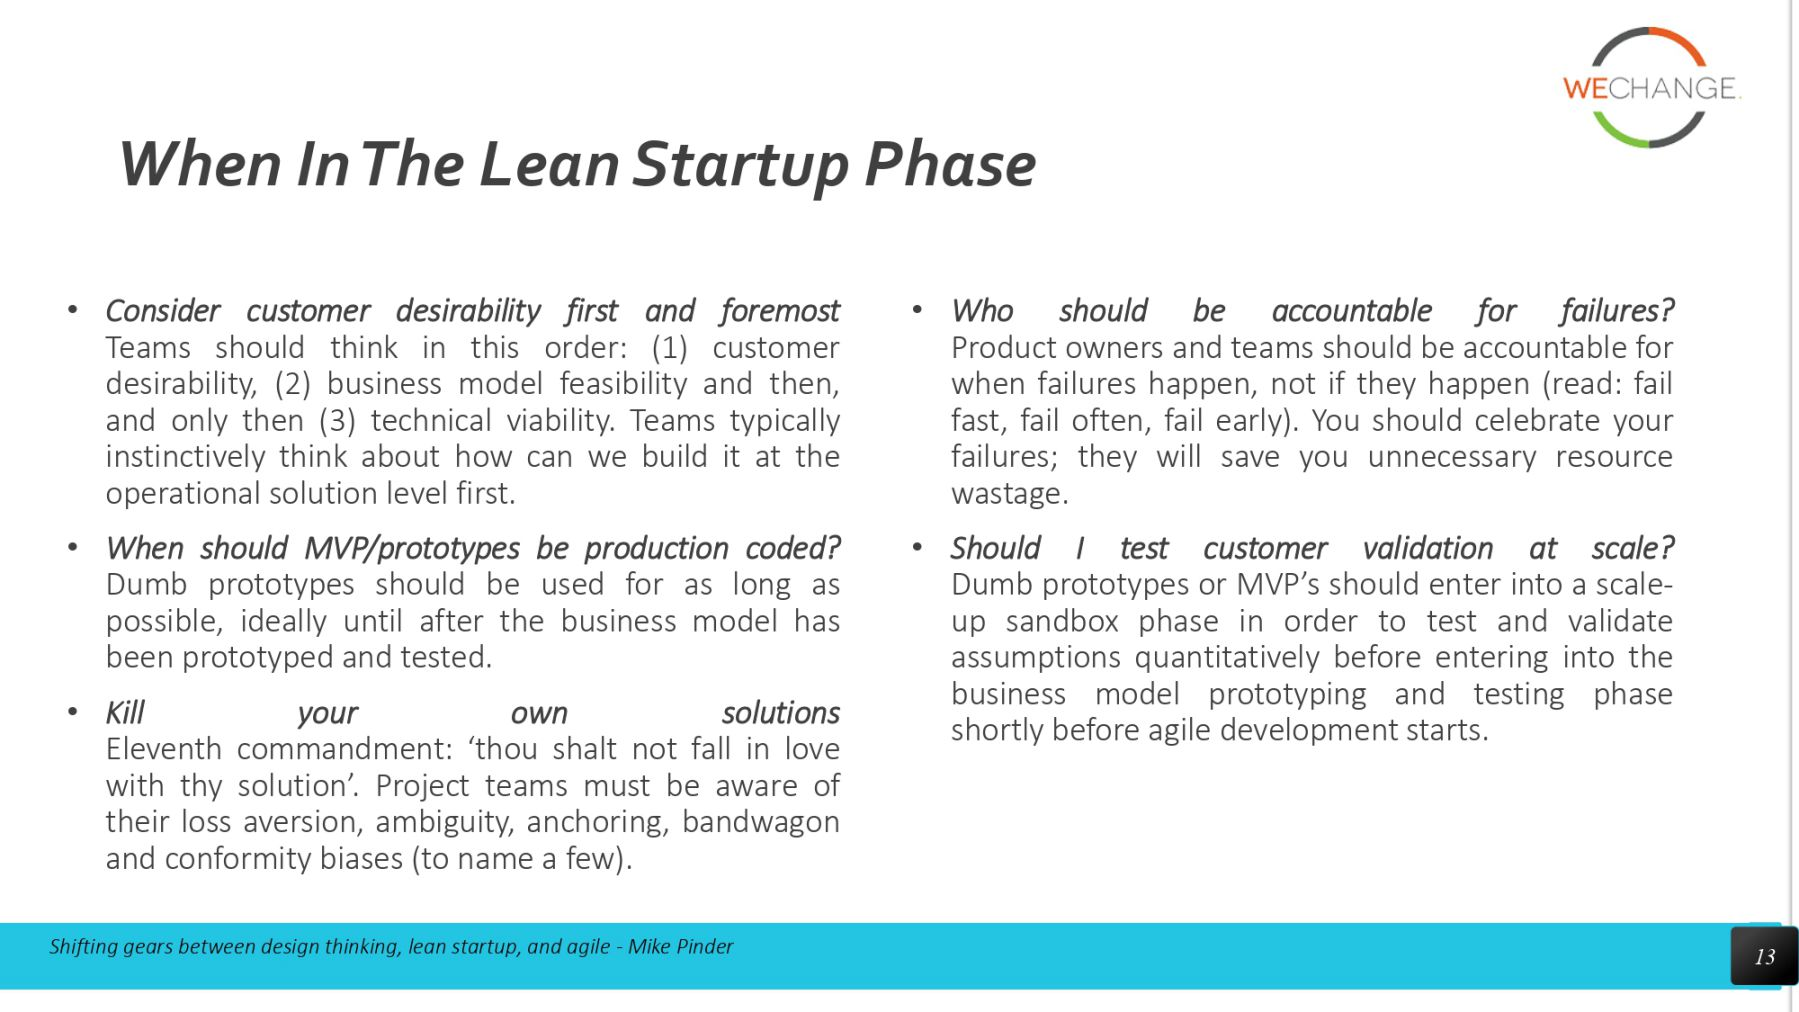 Design thinking lean startup and agile page 0012 compressed Design thinking lean startup and agile